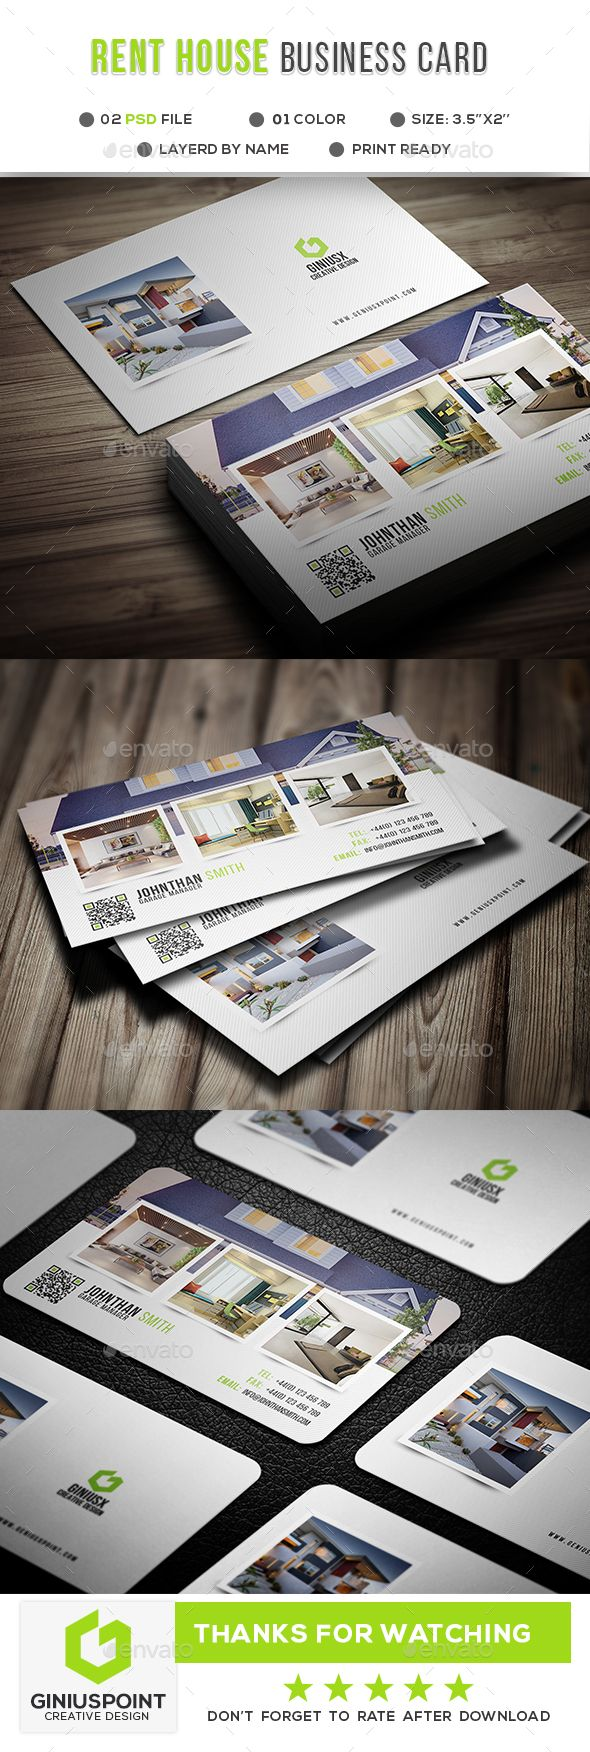 Rent House Business Card   Business cards, Corporate business and ...